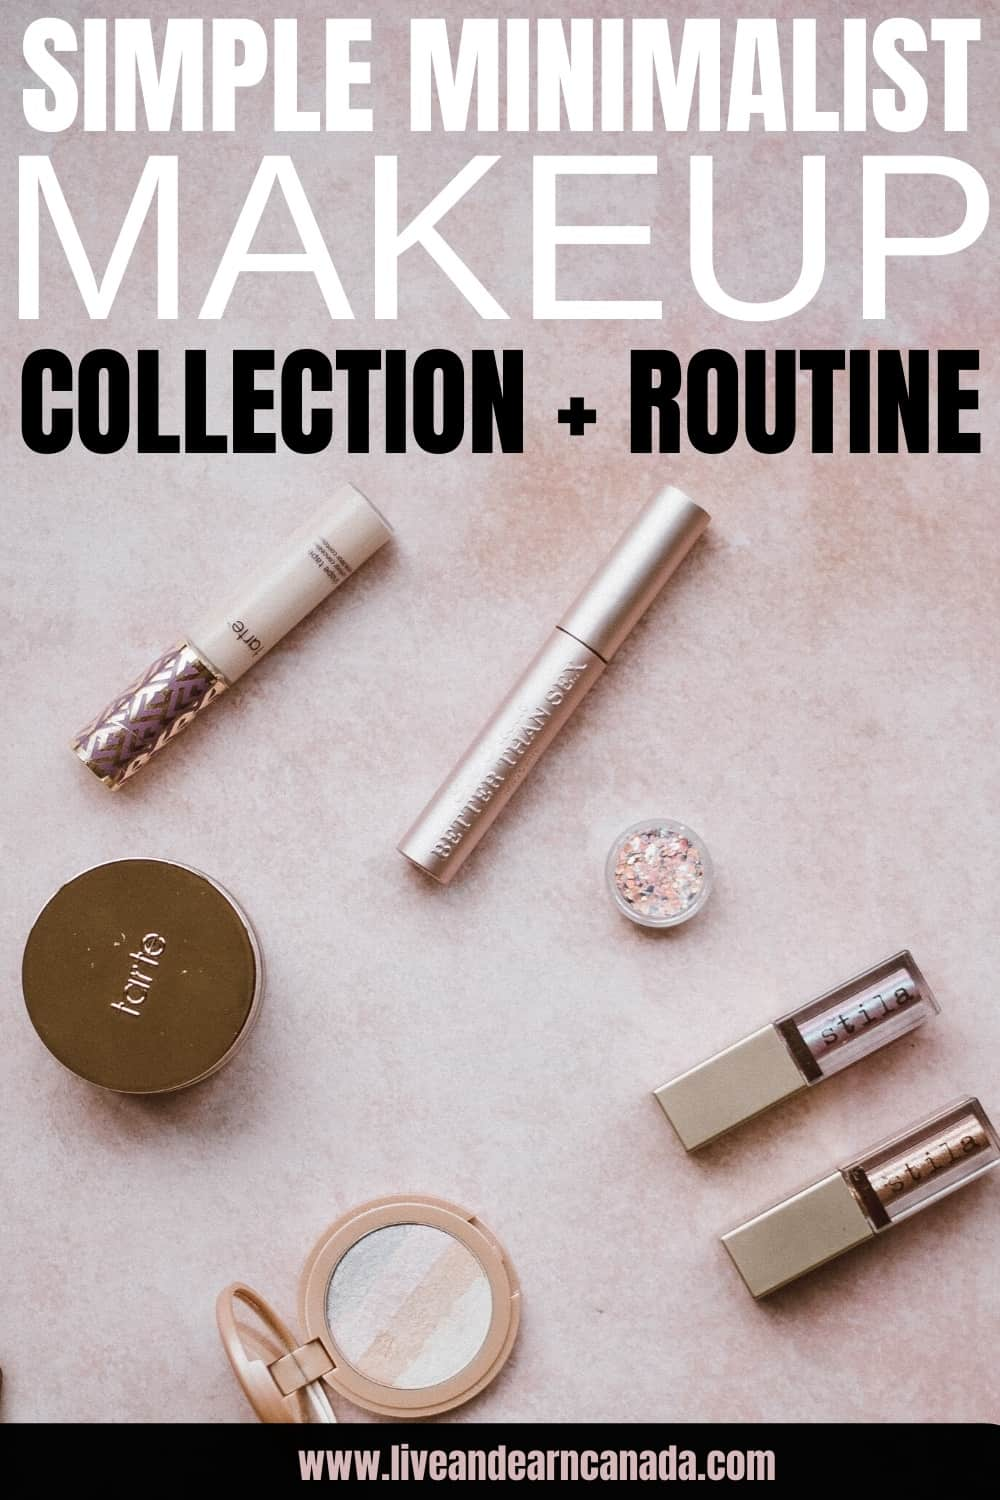 Here is how to create a simple minimalist makeup collection. Here is what to include in your makeup storage collection. Every beauty product to include in your minimalist makeup collection! Natural makeup inspiration ideas! #makeup #beautyproduct #minimalistmakeup